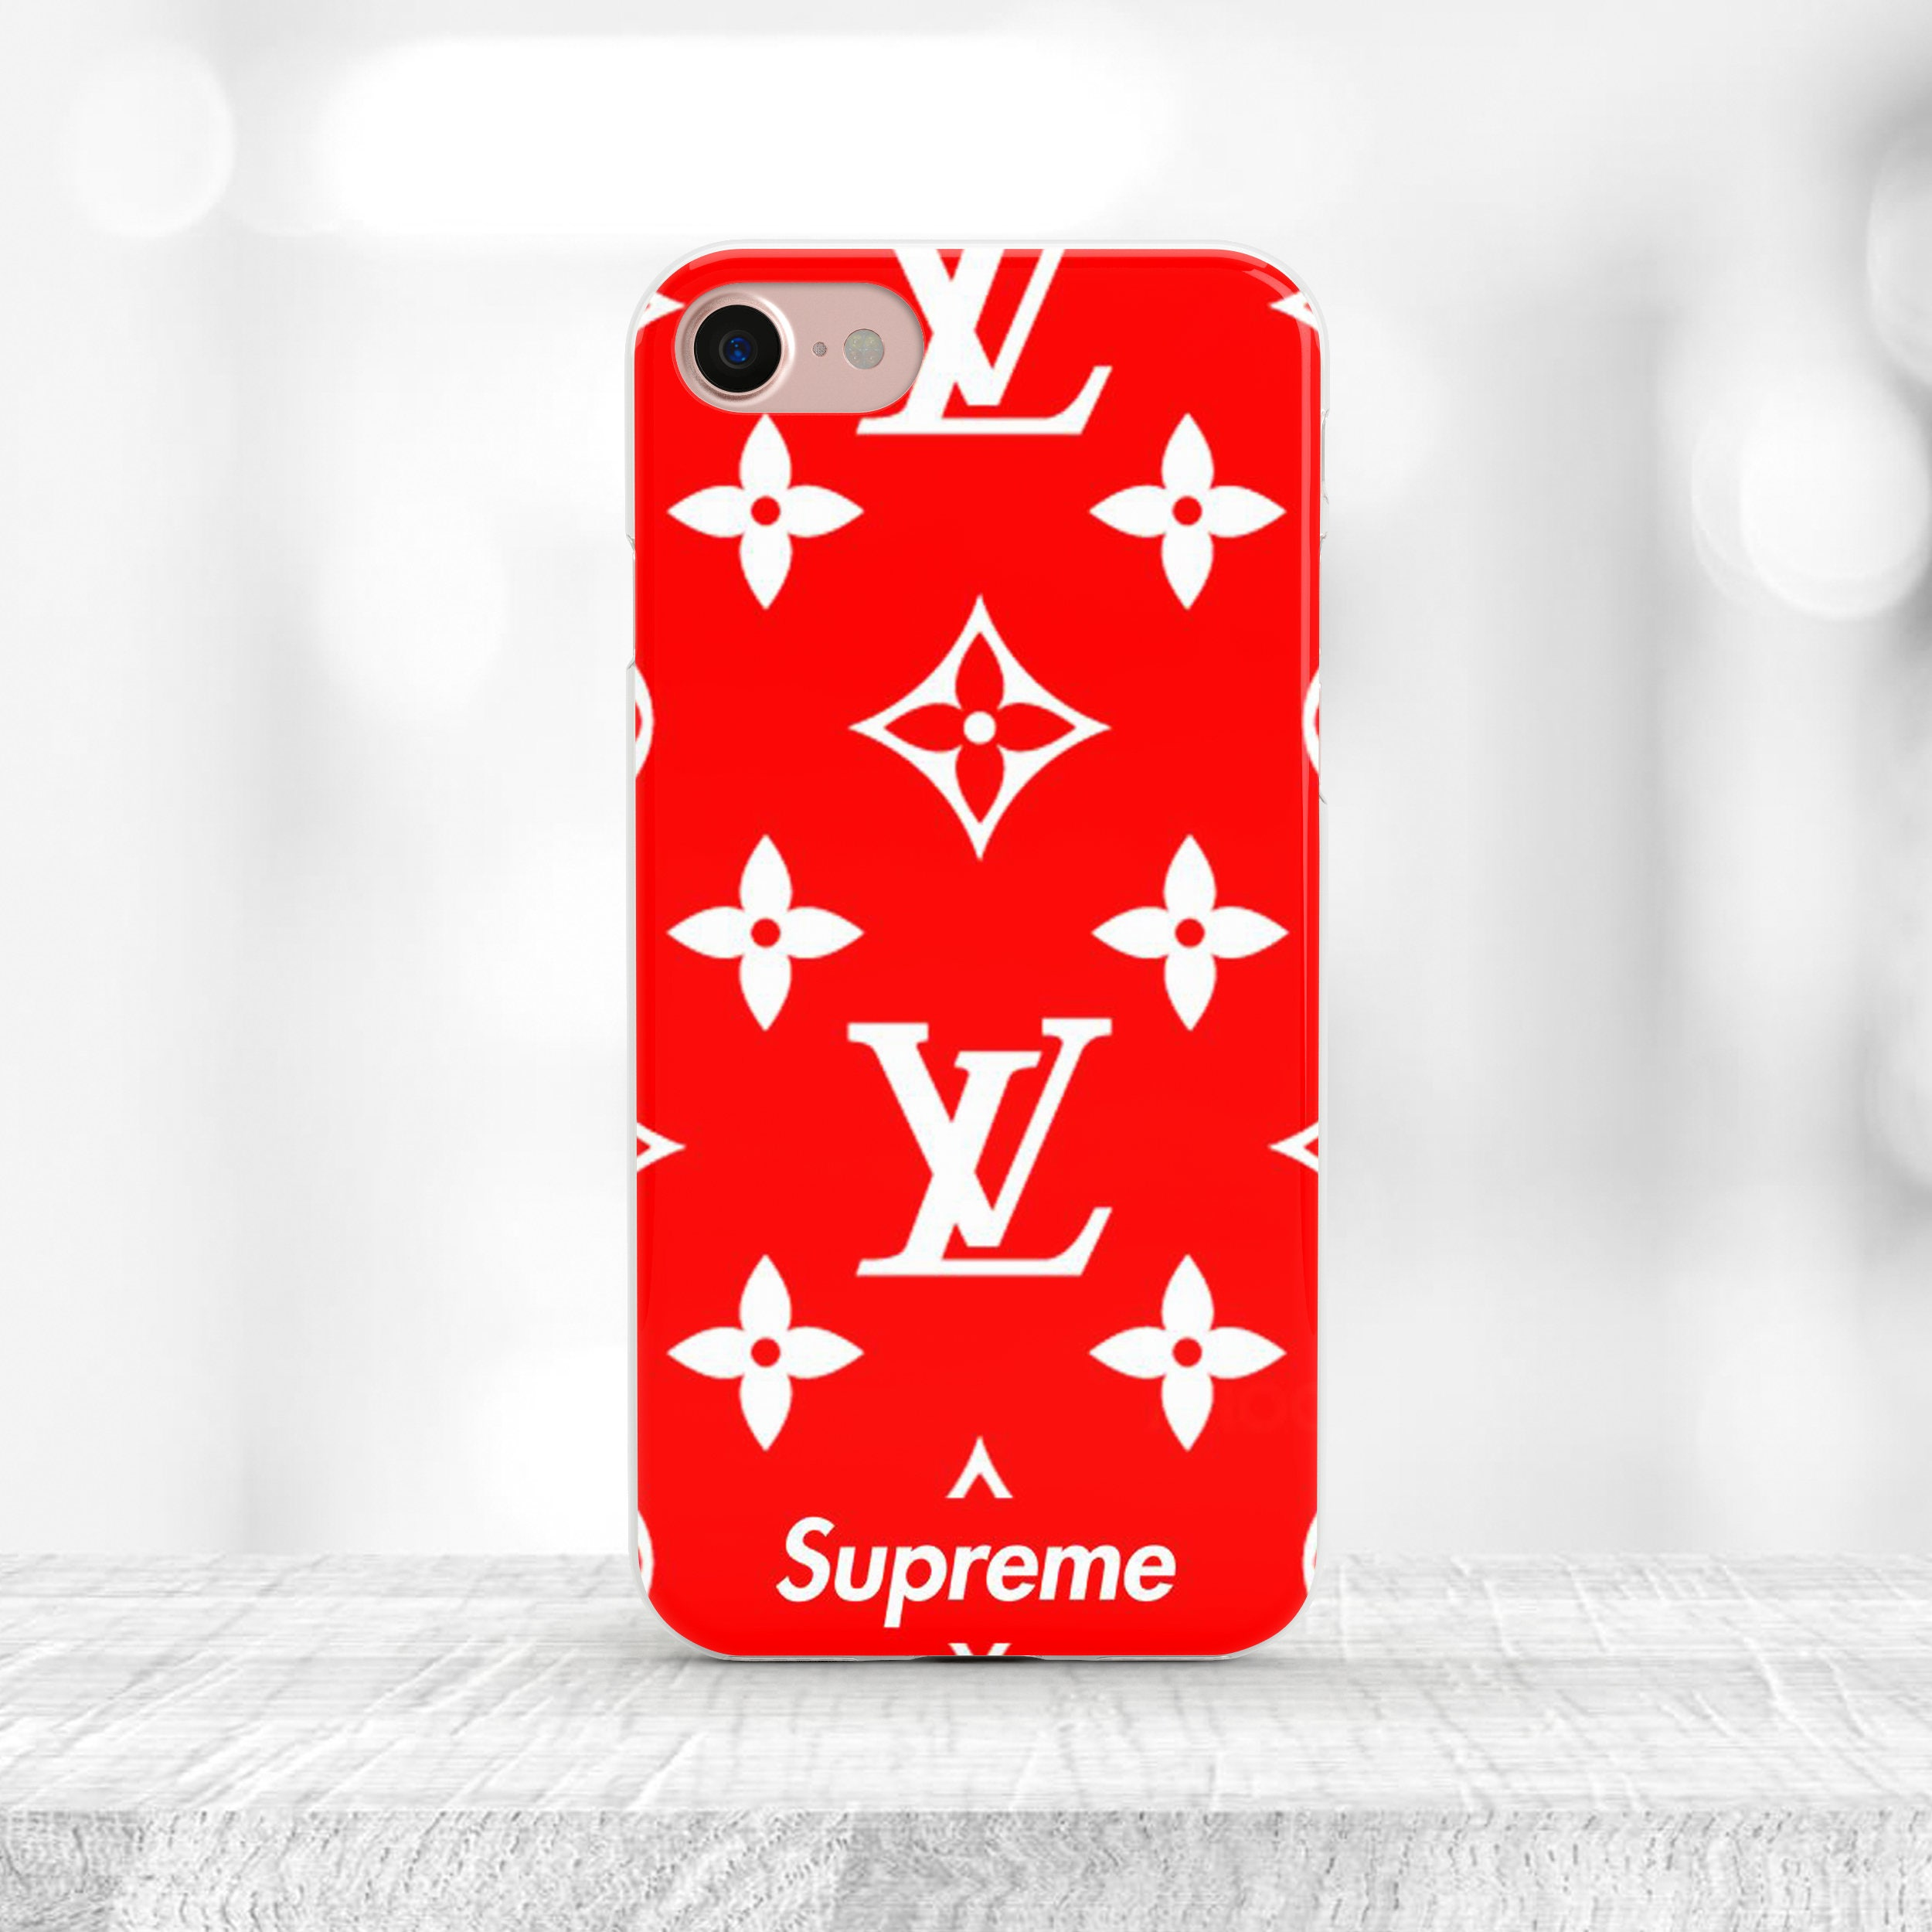 Supreme Phone Case Iphone  Plus